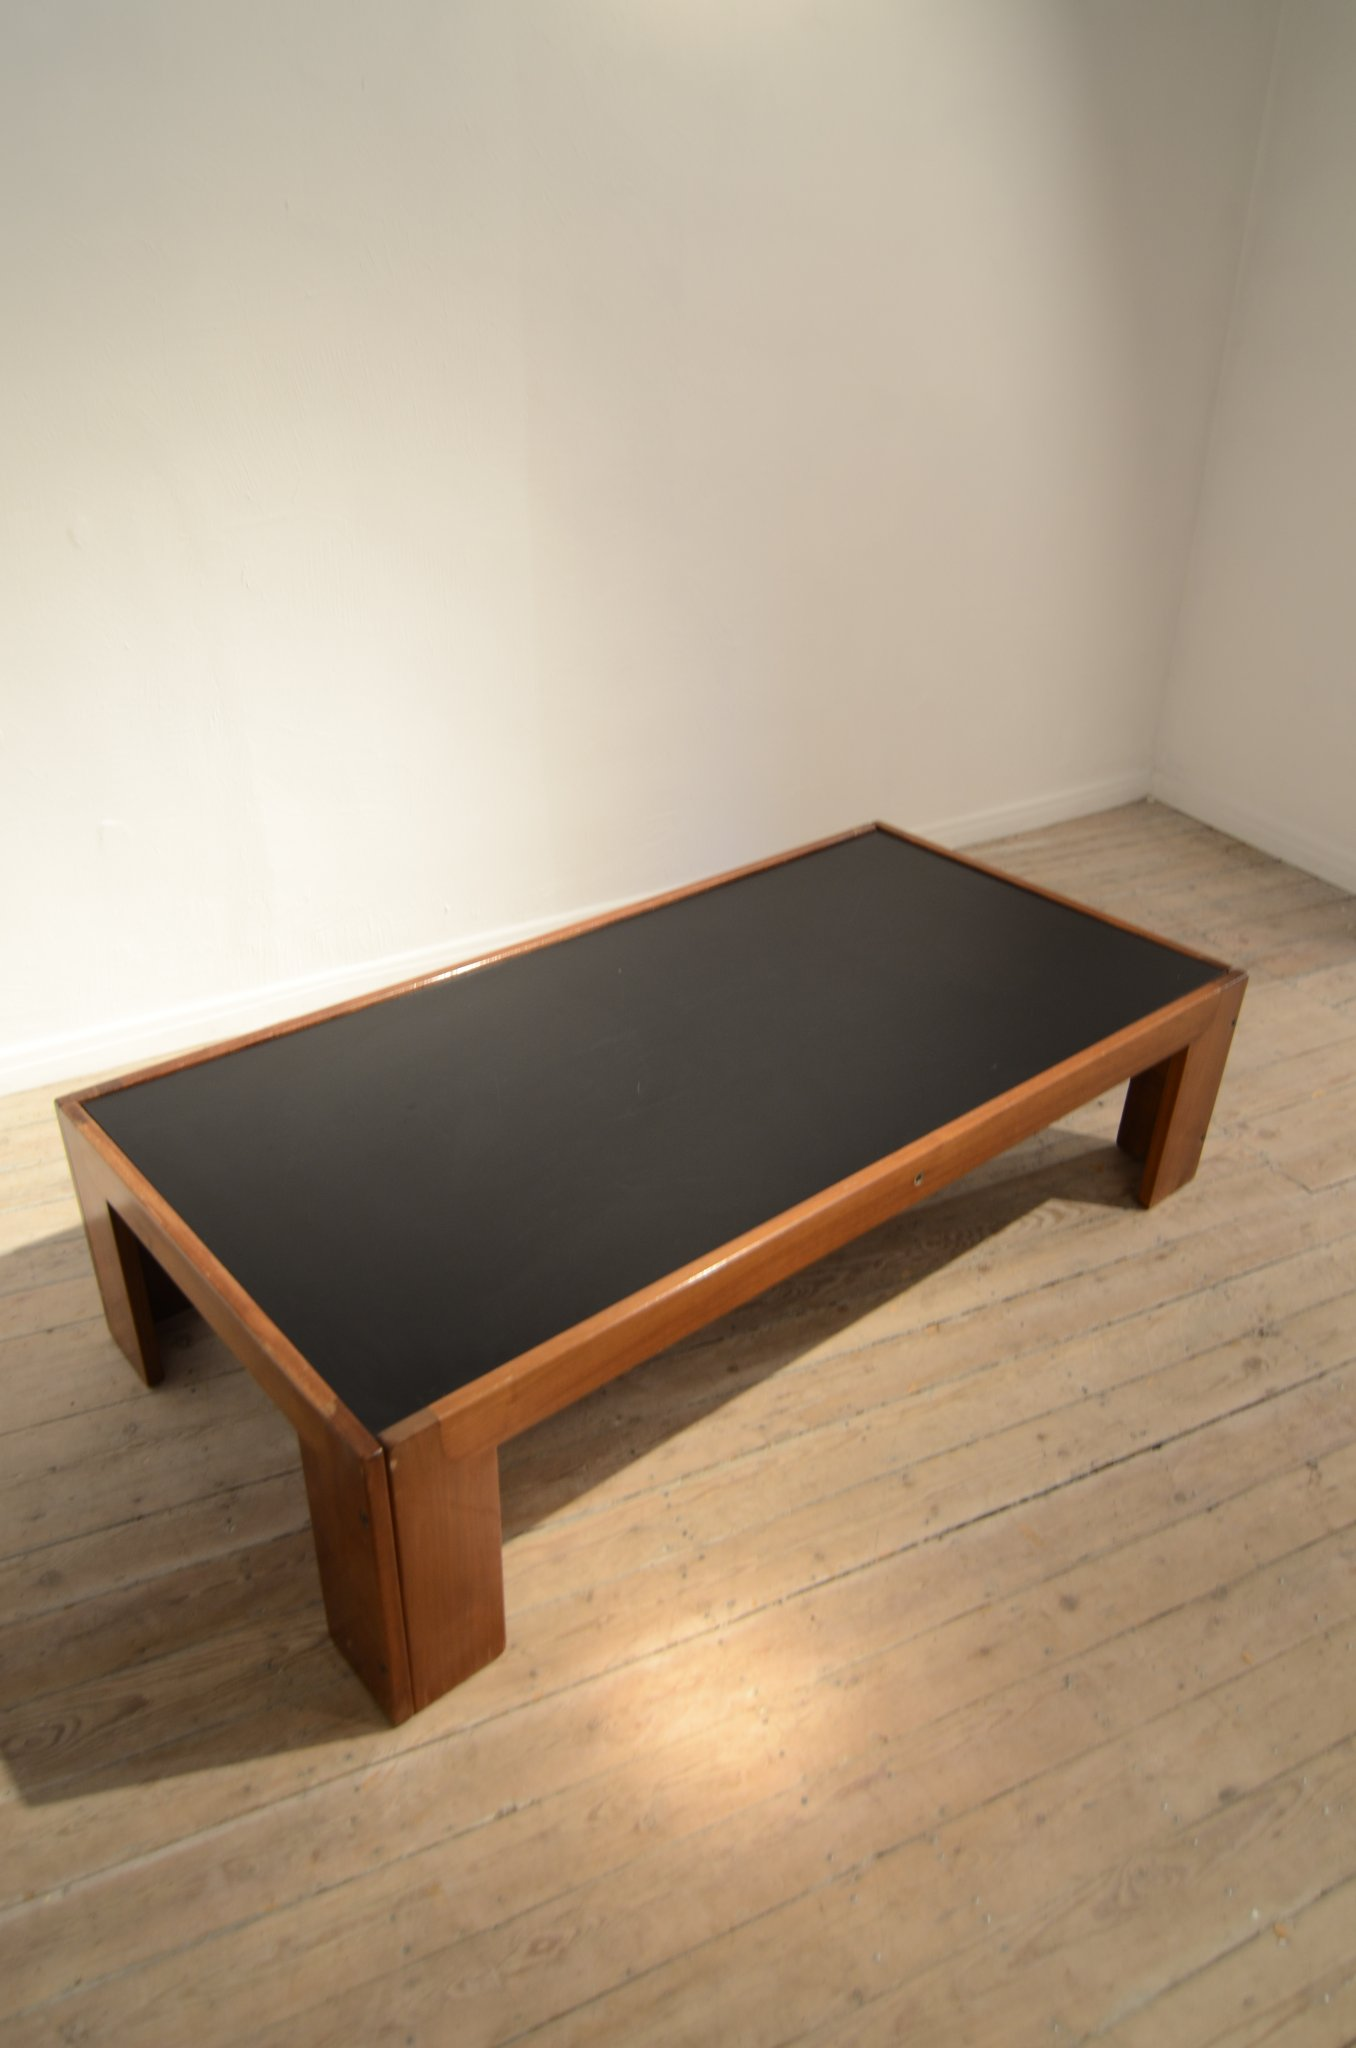 Scarpa coffee table